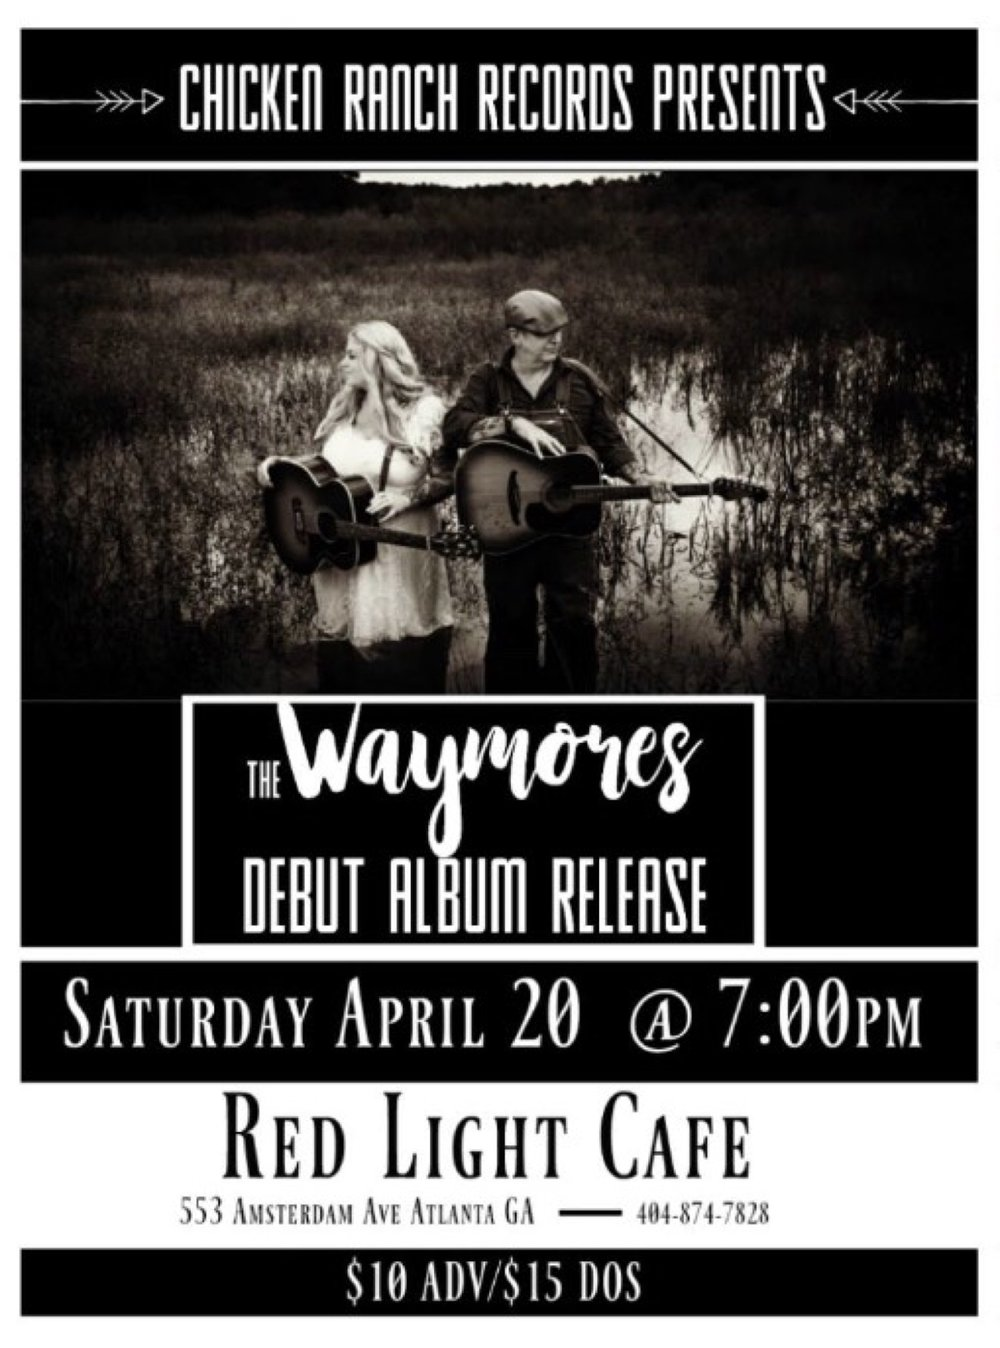 The Waymores Debut Album Release Party — April 20, 2019 — Red Light Café, Atlanta, GA